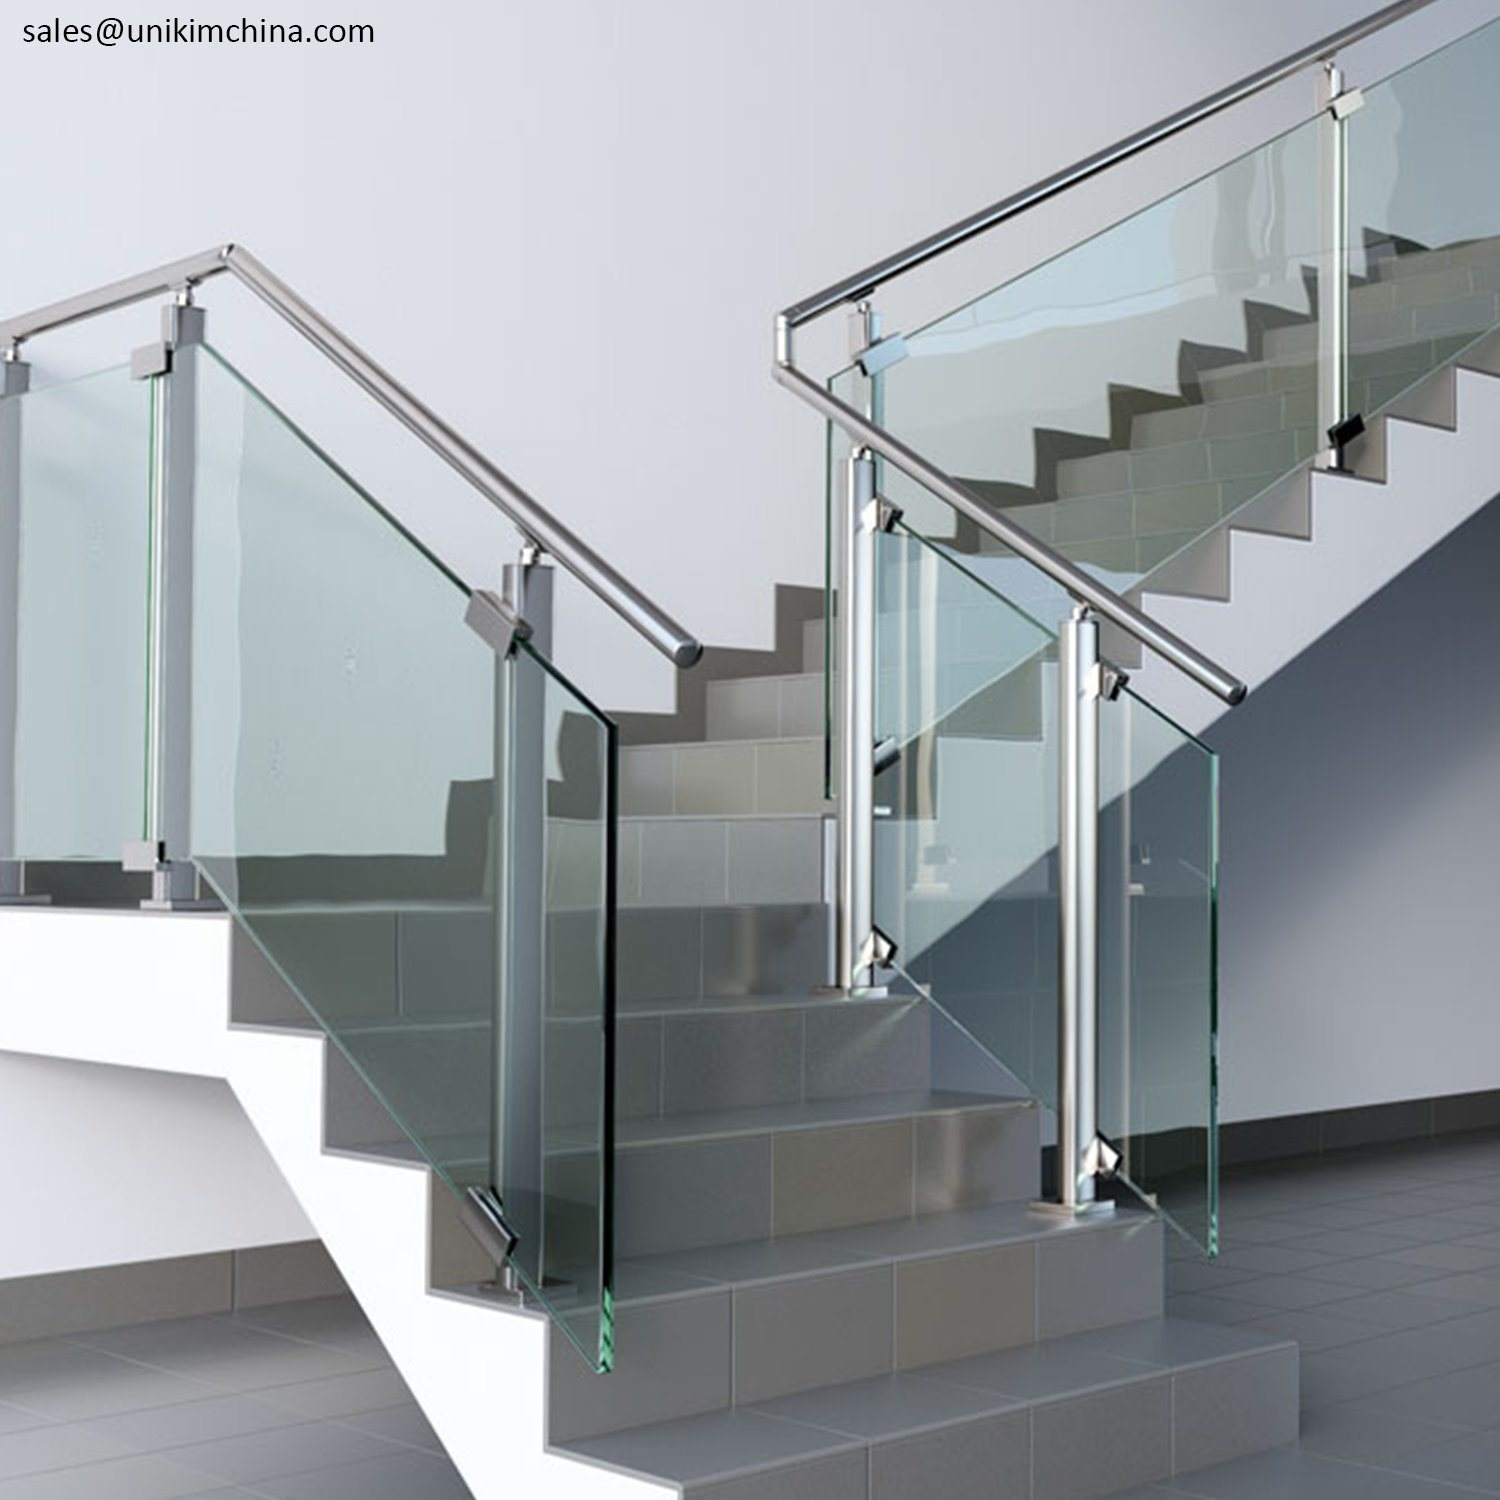 China Factory Outdoor Stainless Steel Stair Railing Balustrade | Stainless Steel Outdoor Stair Railings | Horizontal | Balcony 4X10 | Metal | Black | Hand